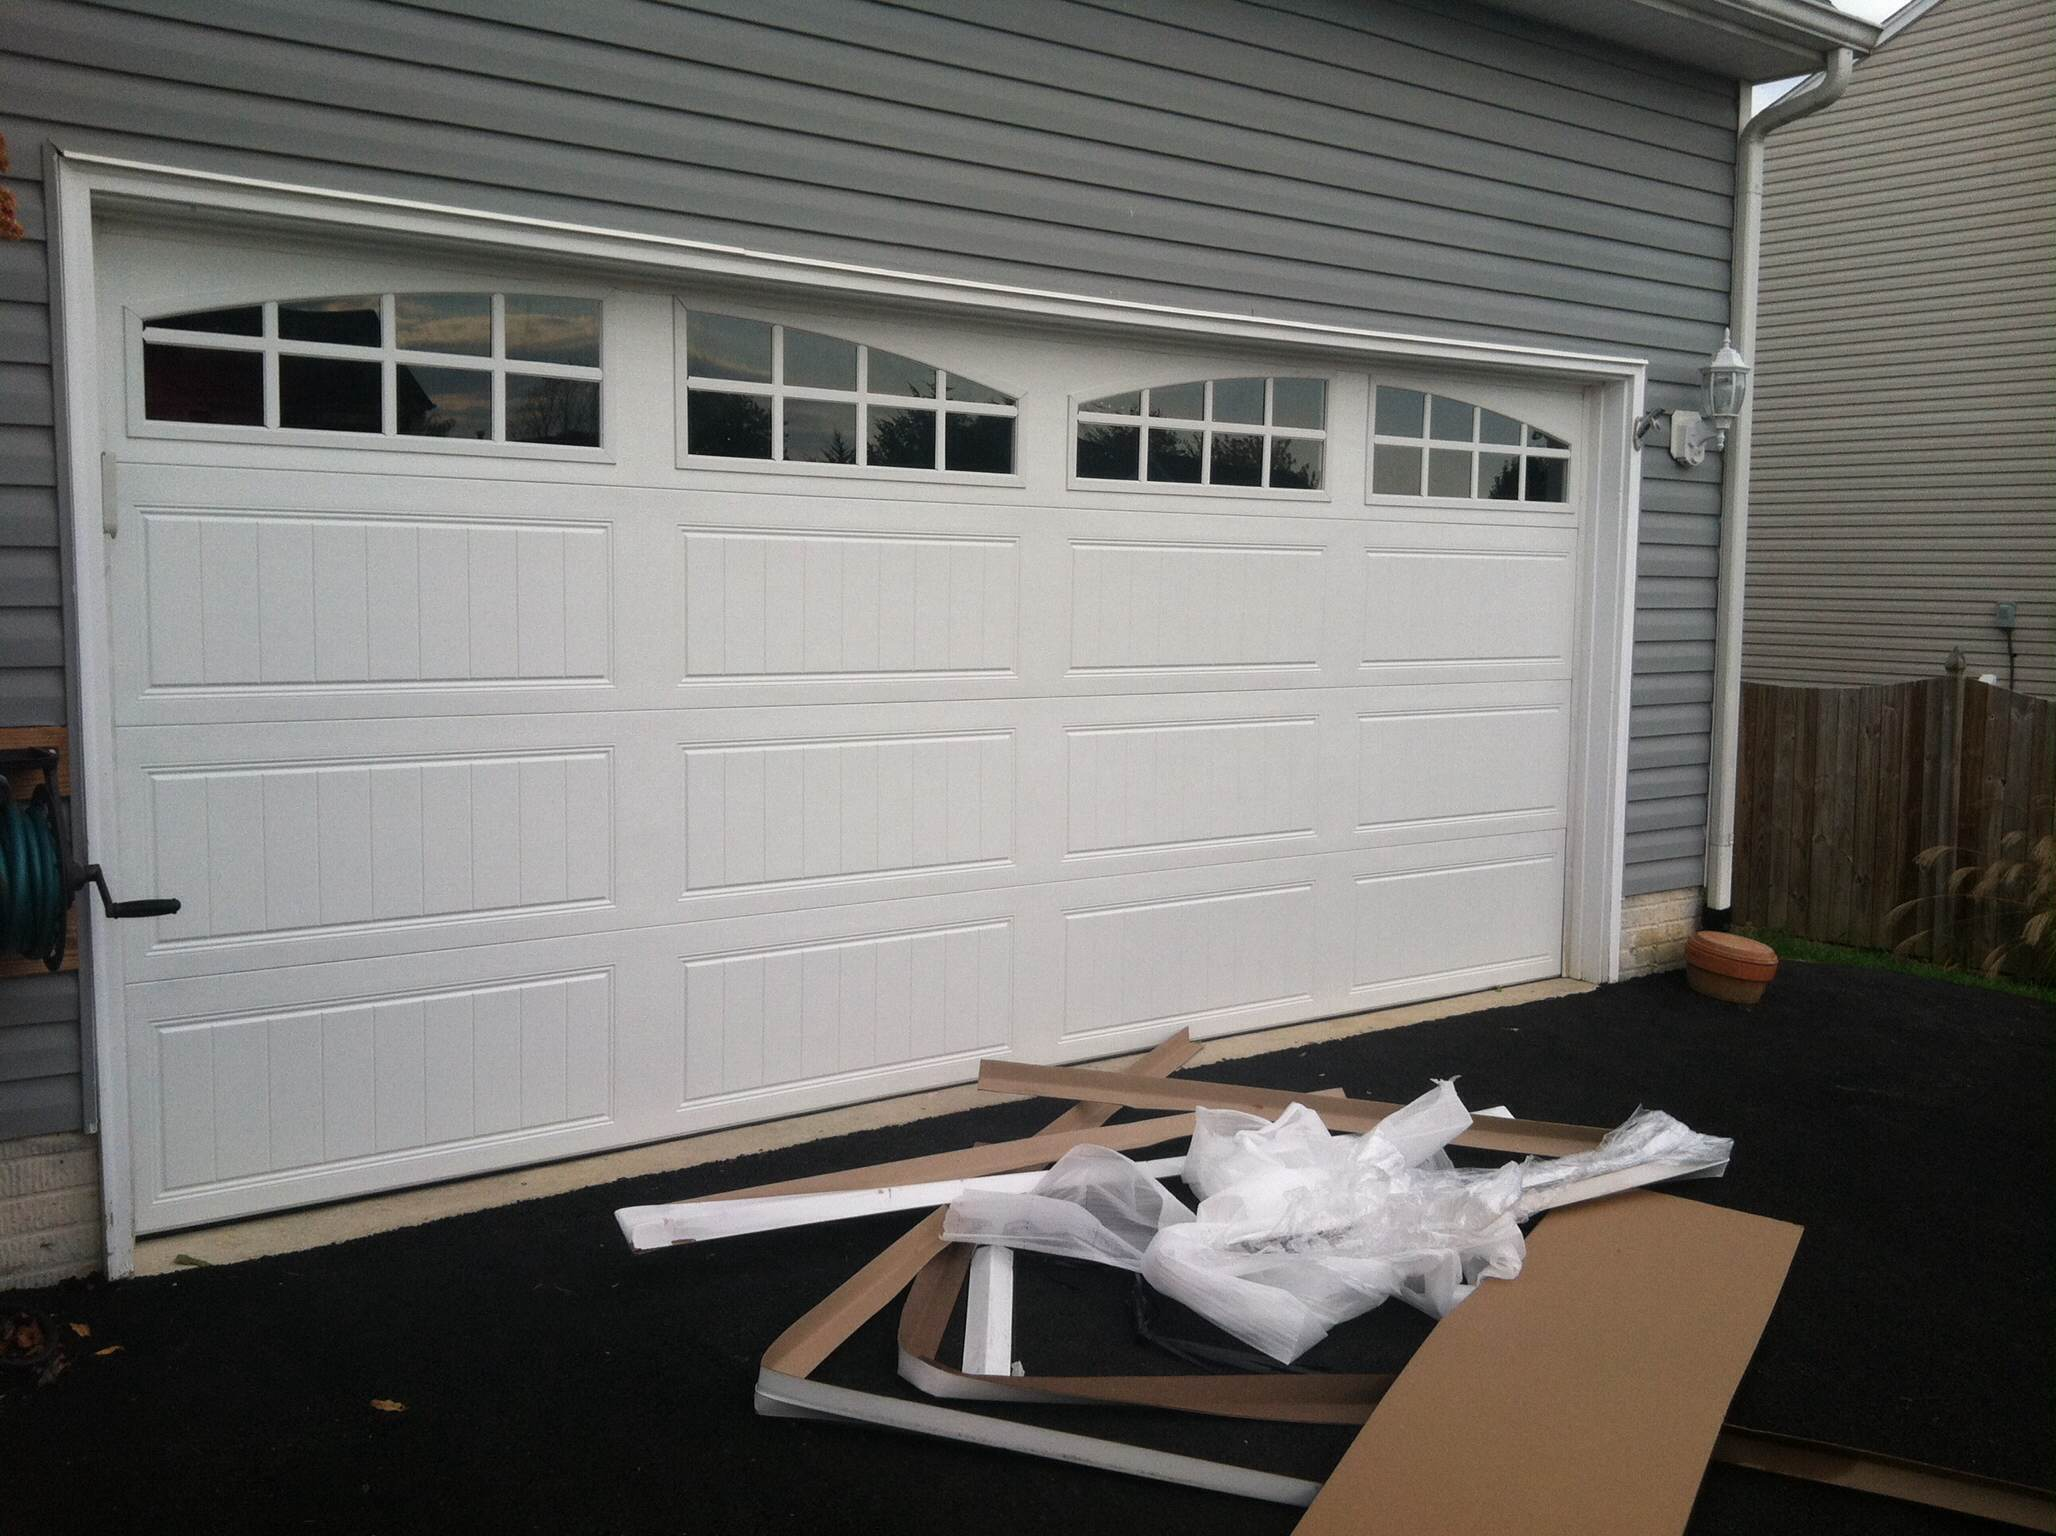 Charmant Garage Door Repair Maintenance Services In Herndon VA